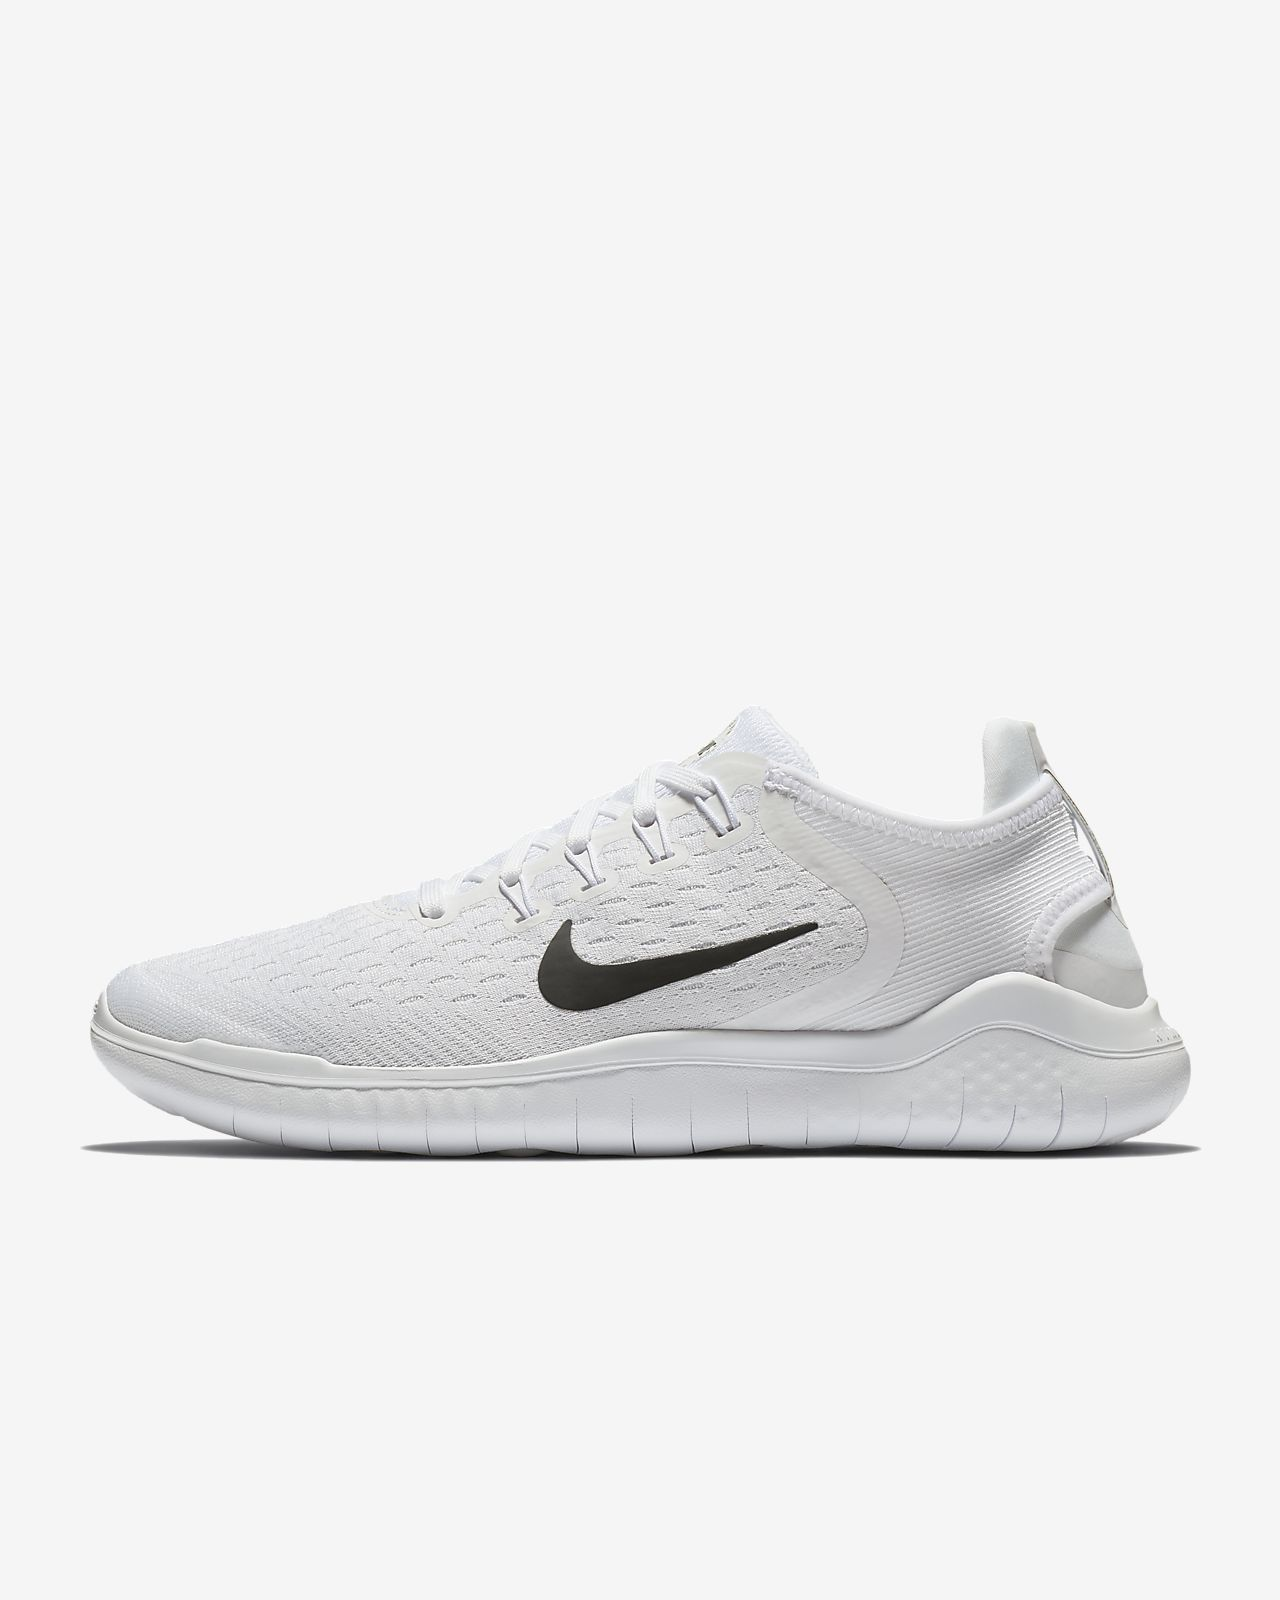 Nike Free RN 2018 Womens Running Shoe